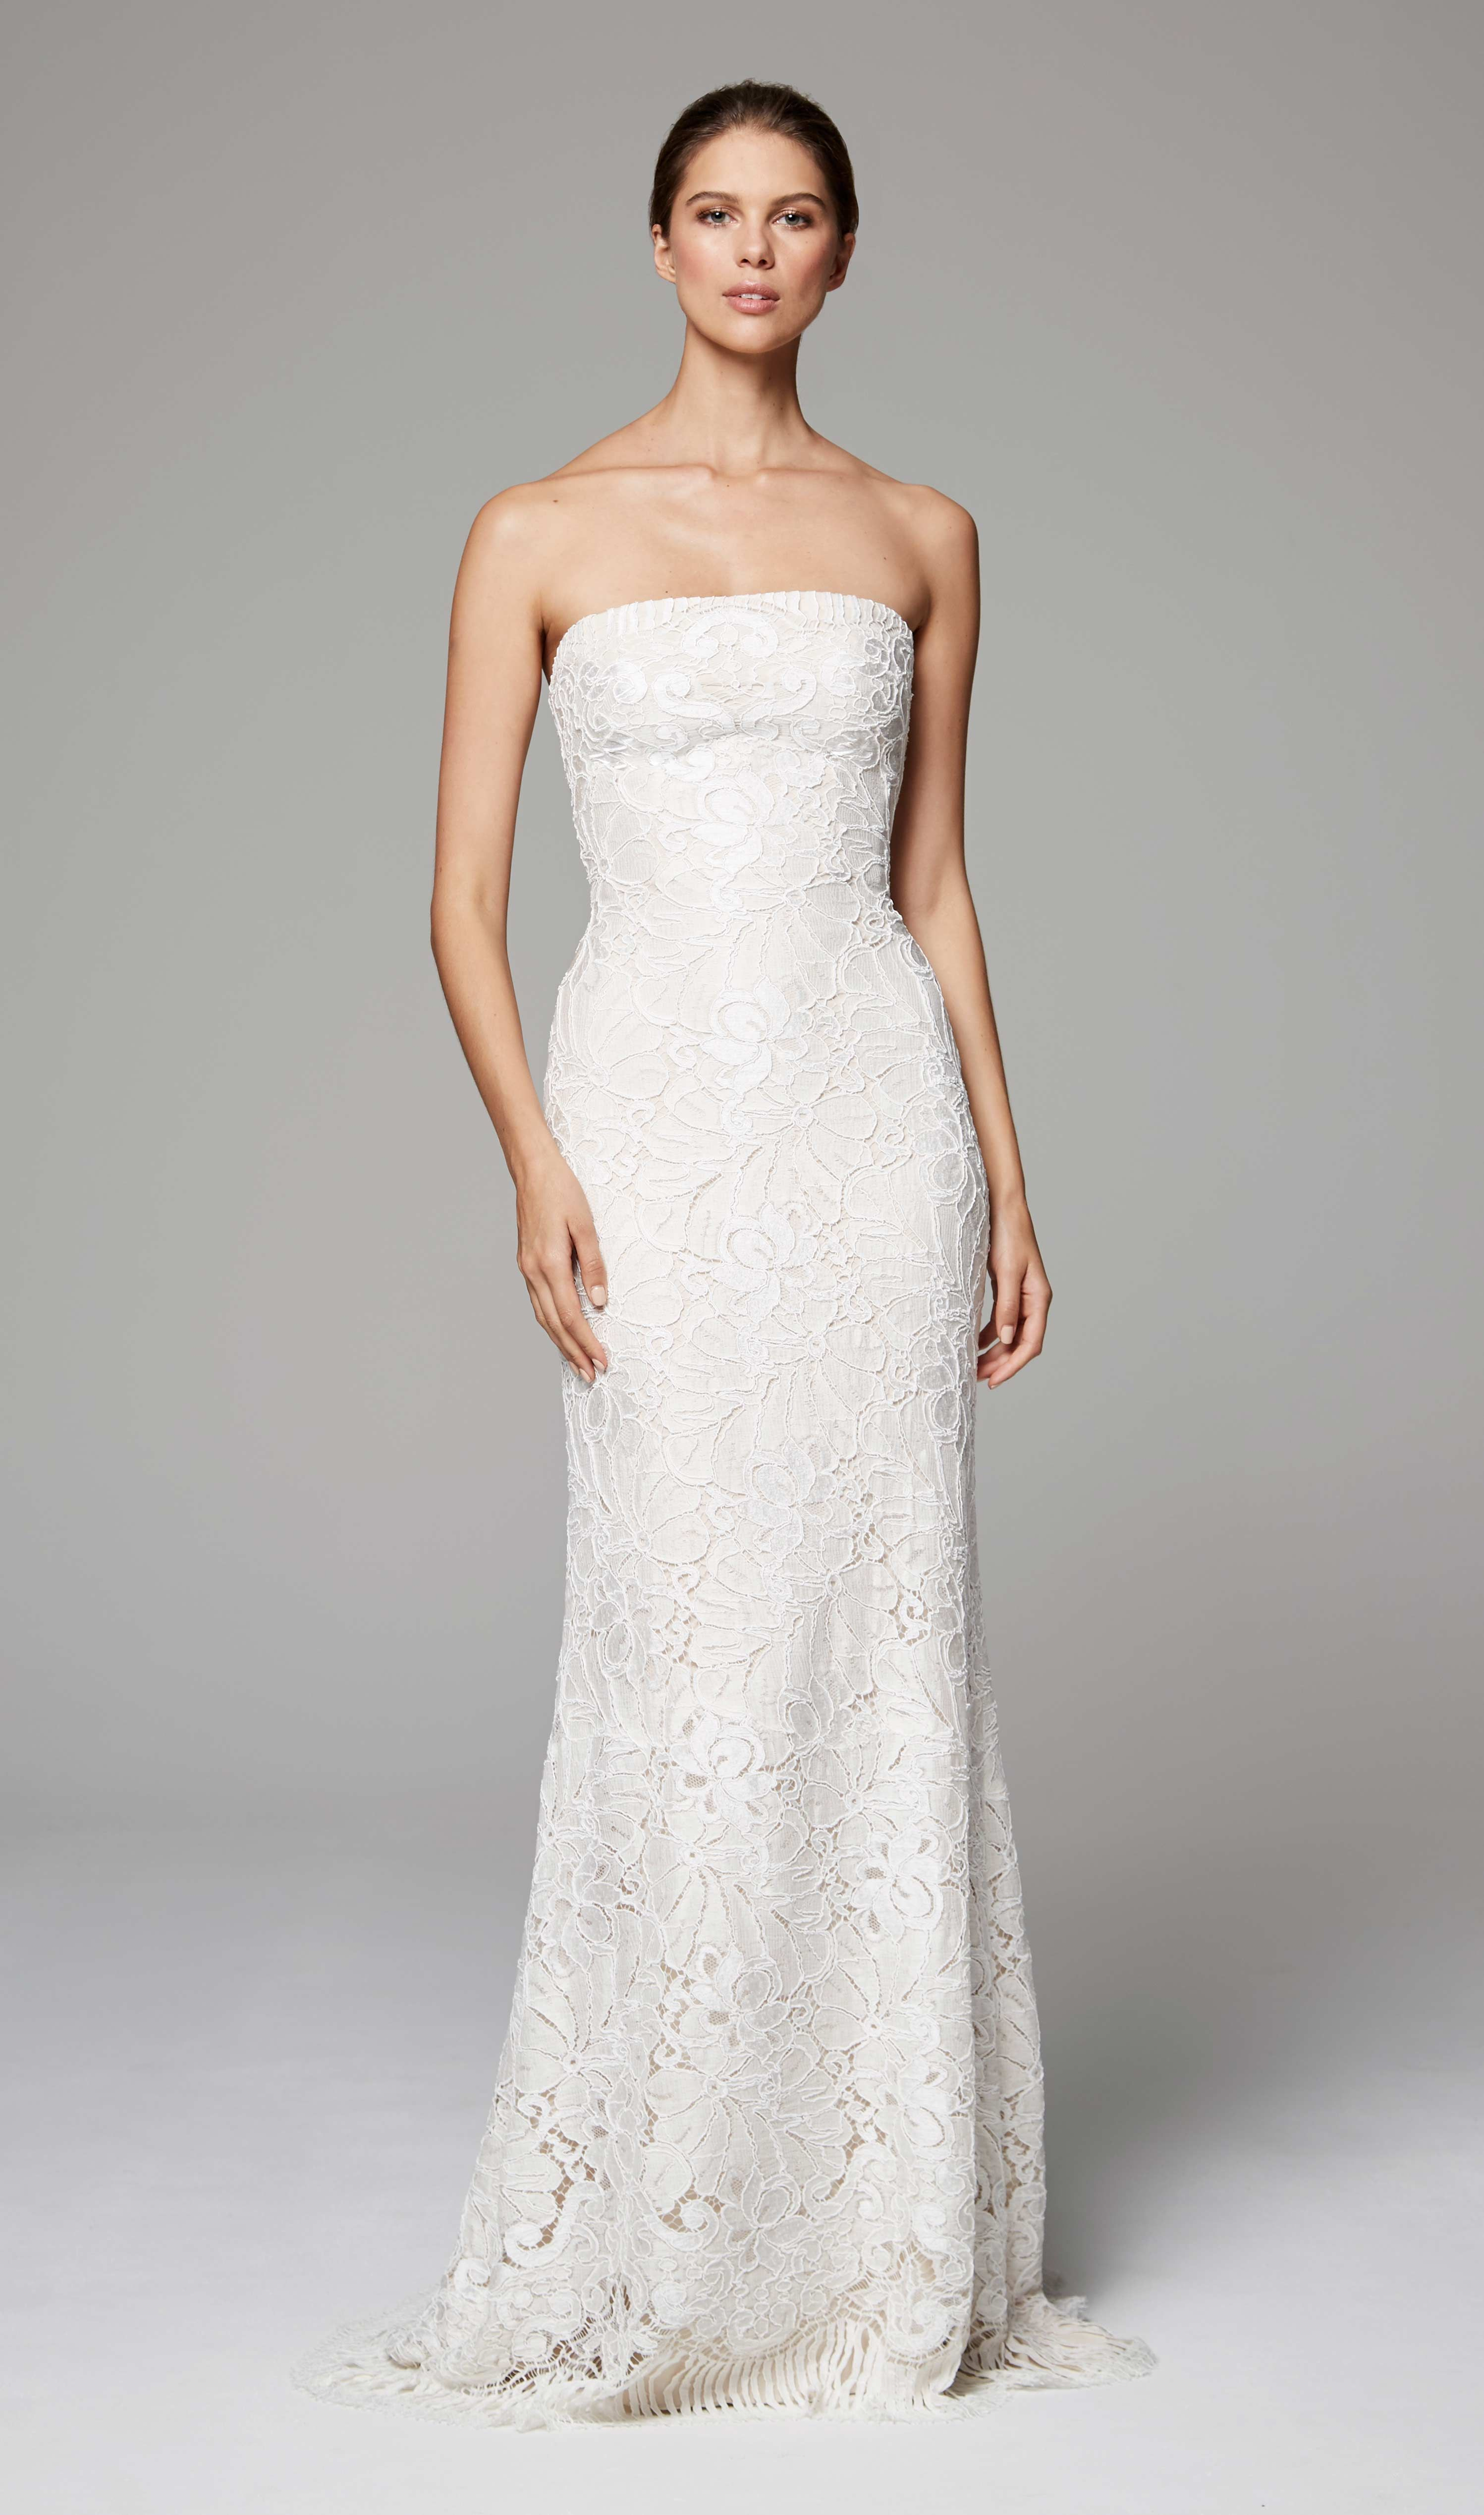 Philippa Anne Barge Fall 2018 Strapless Column Wedding Gown Of